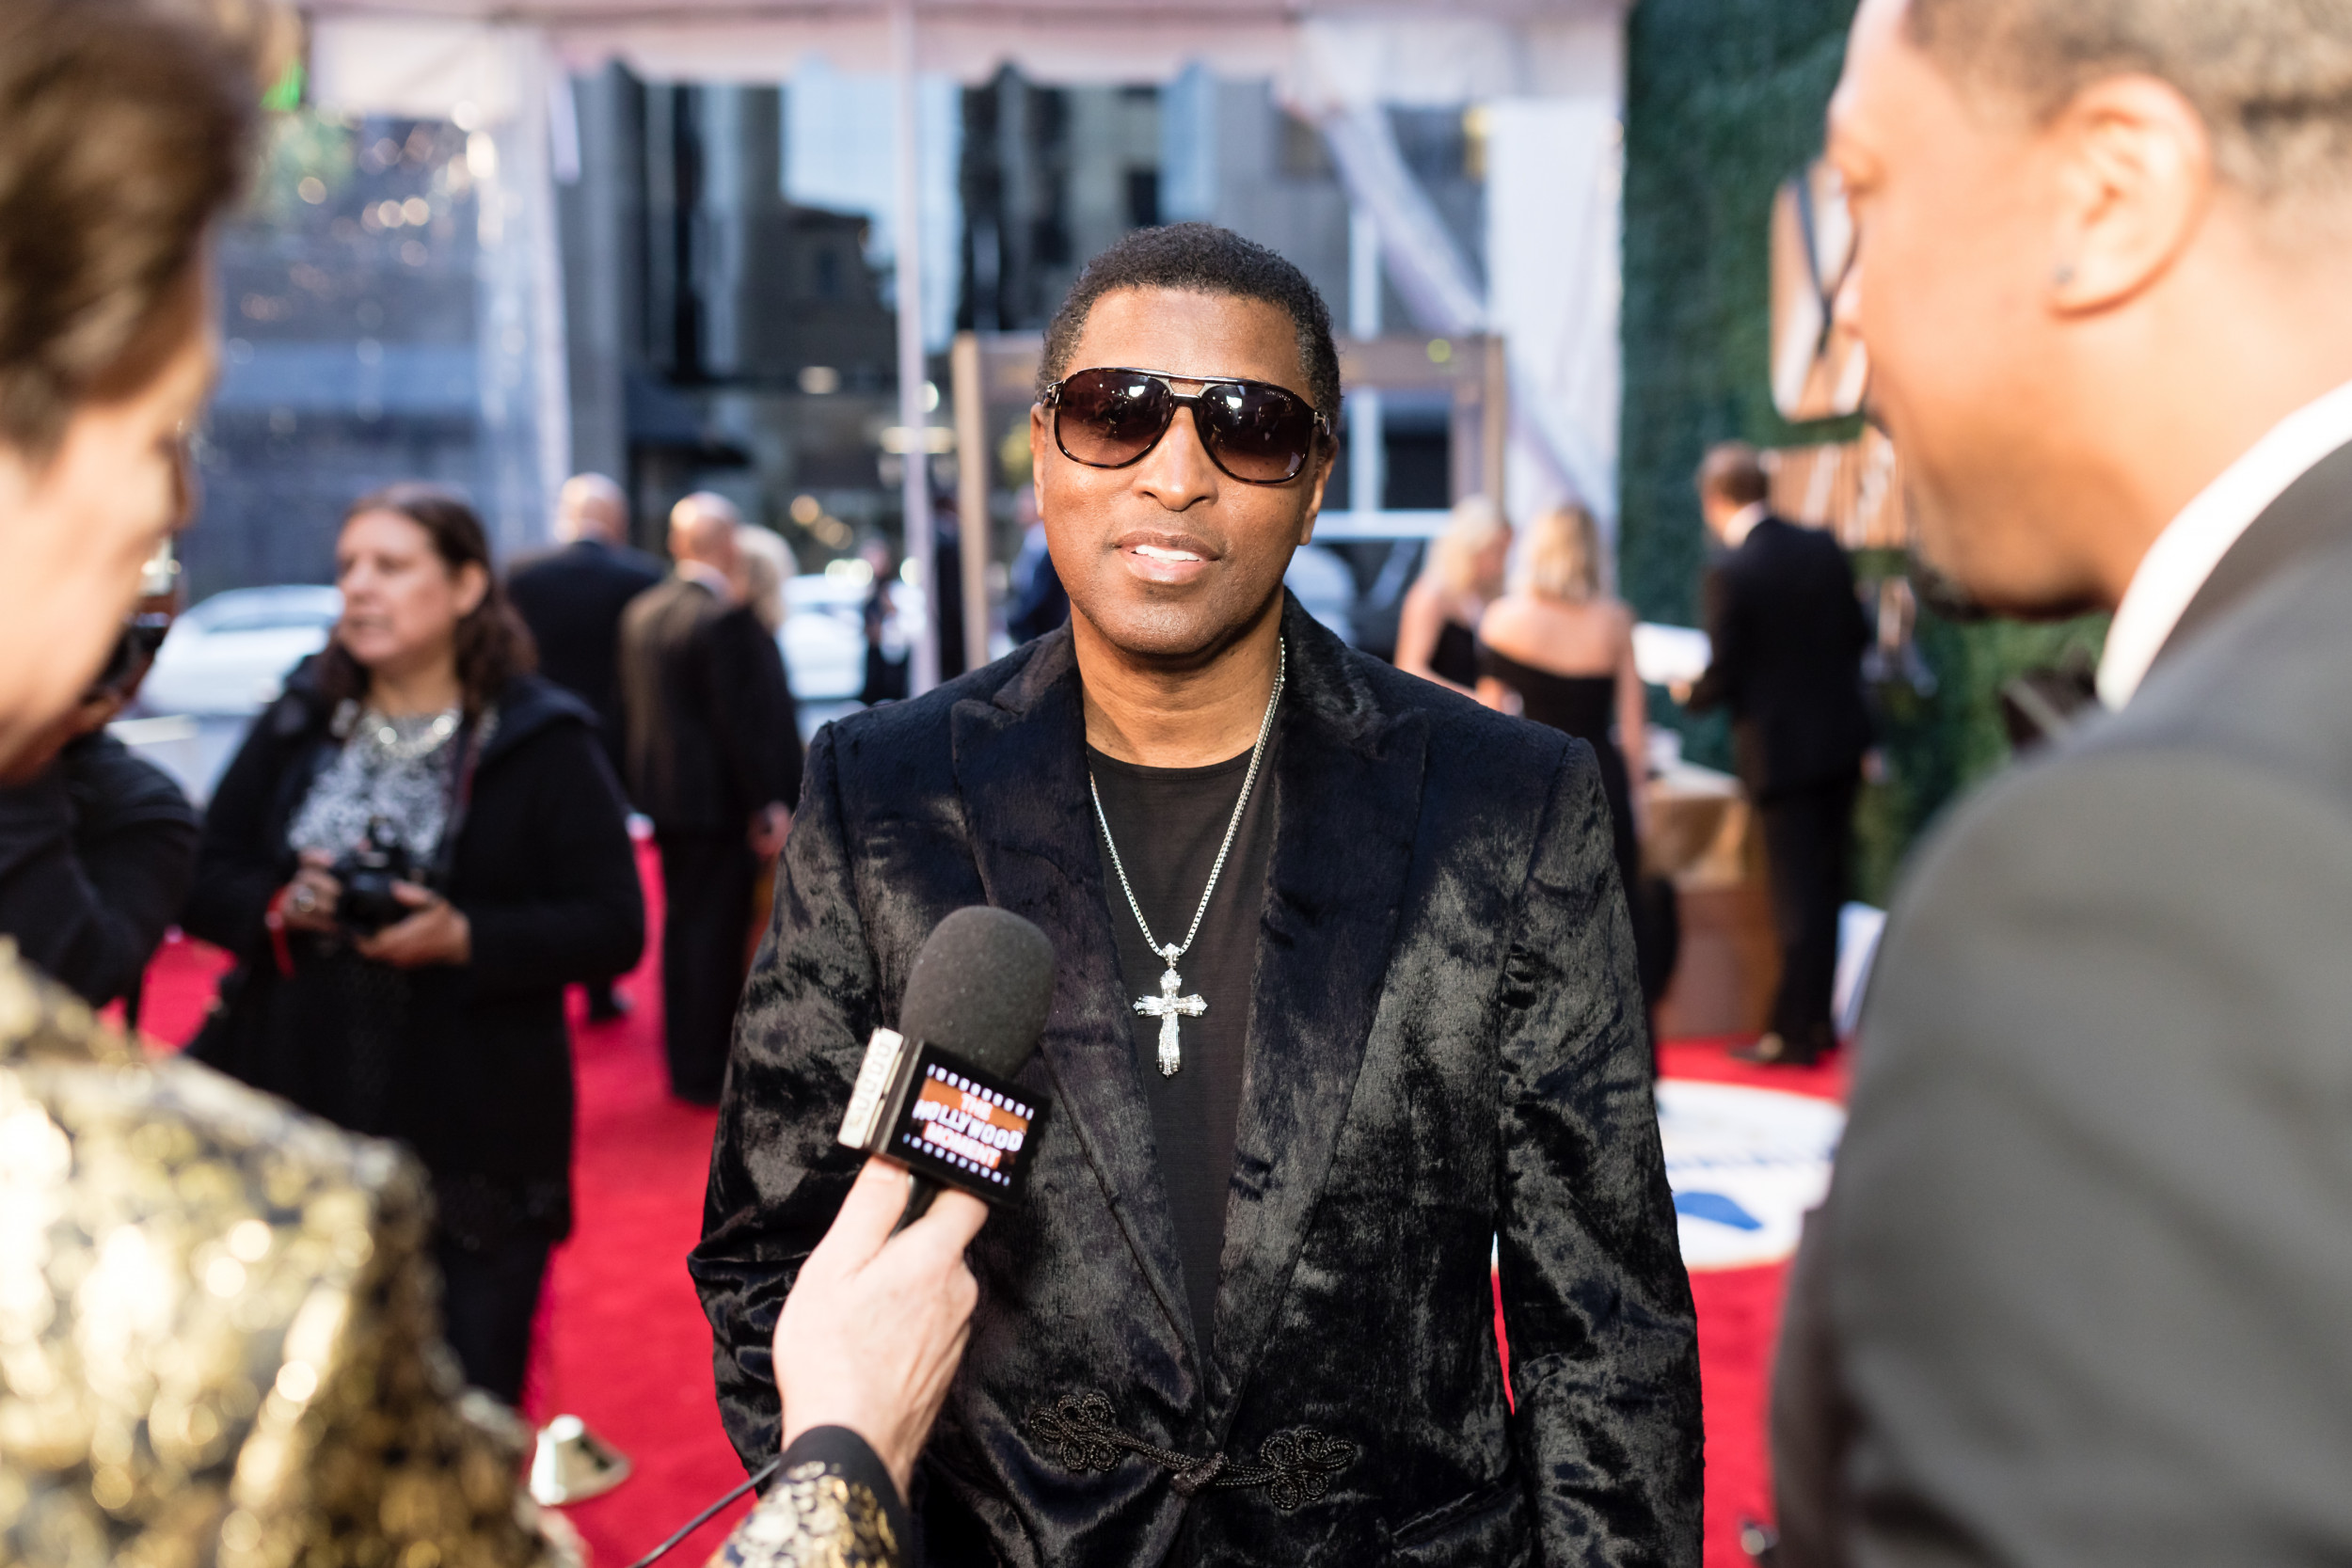 Babyface Reveals He Tested Positive for COVID-19 and Recovered - Newsweek